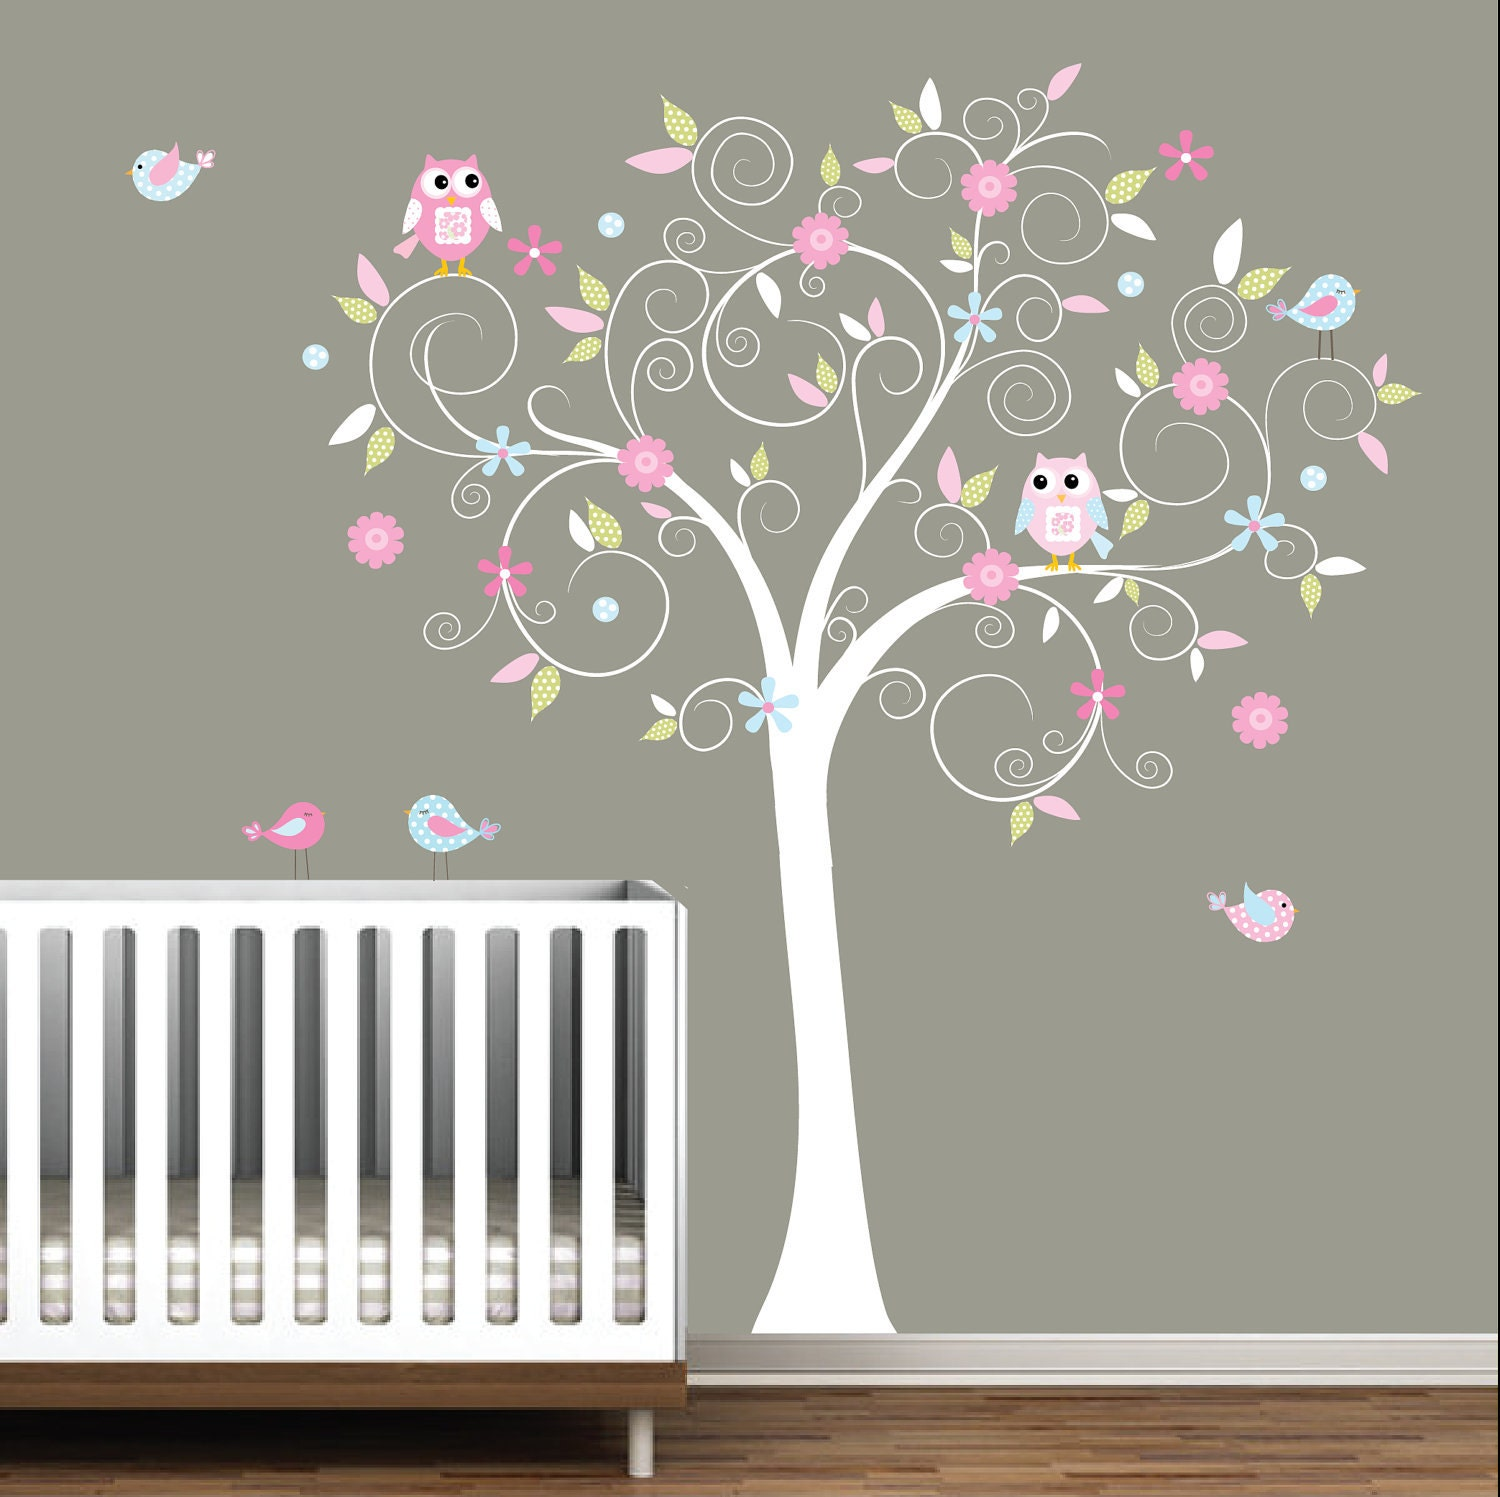 Decal stickers vinyl wall decals nursery tree e17 for Baby nursery tree mural